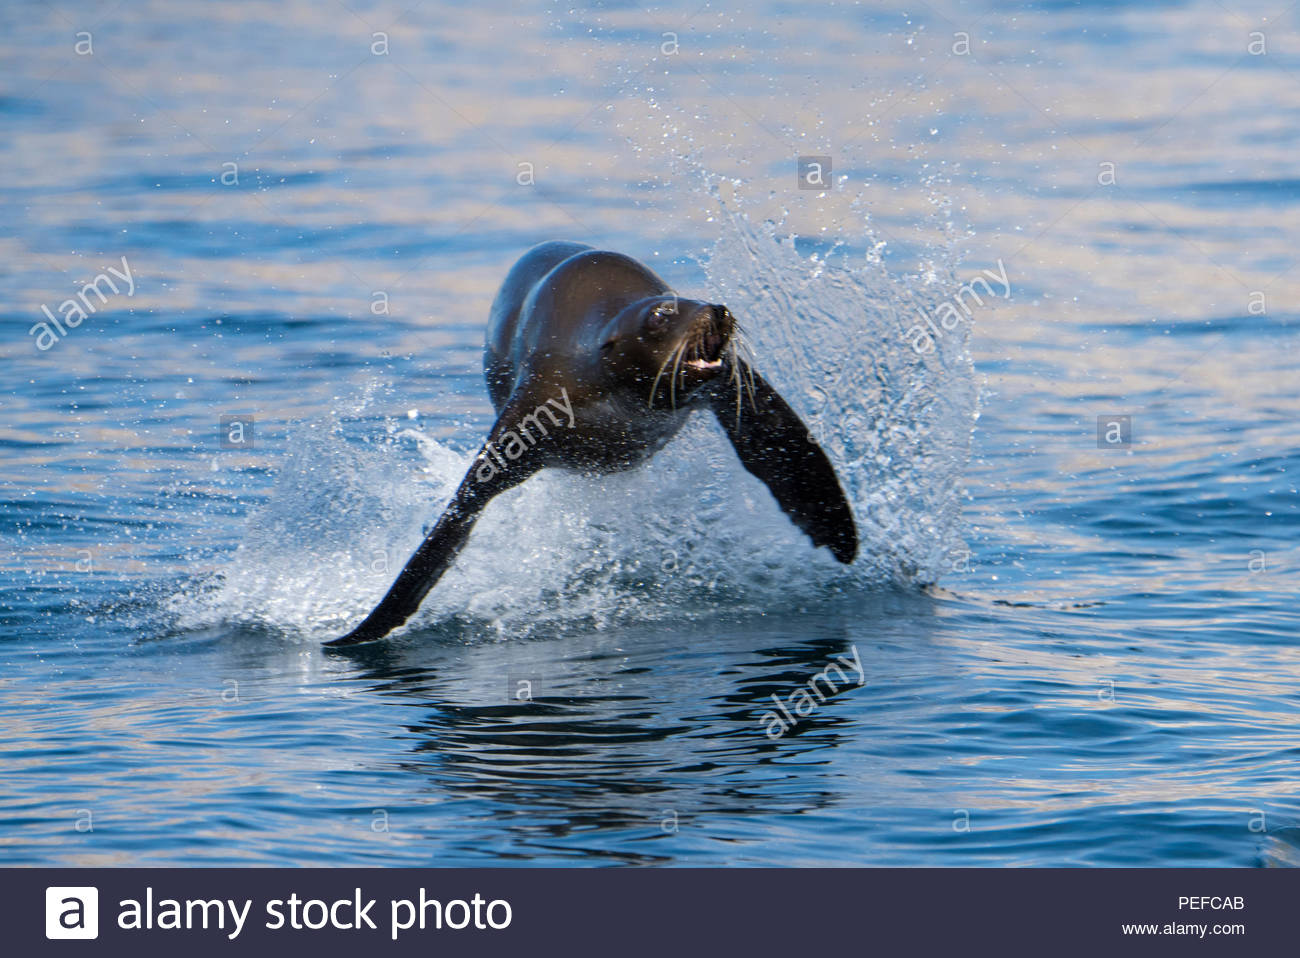 A sea lion jumping. Stock Photo